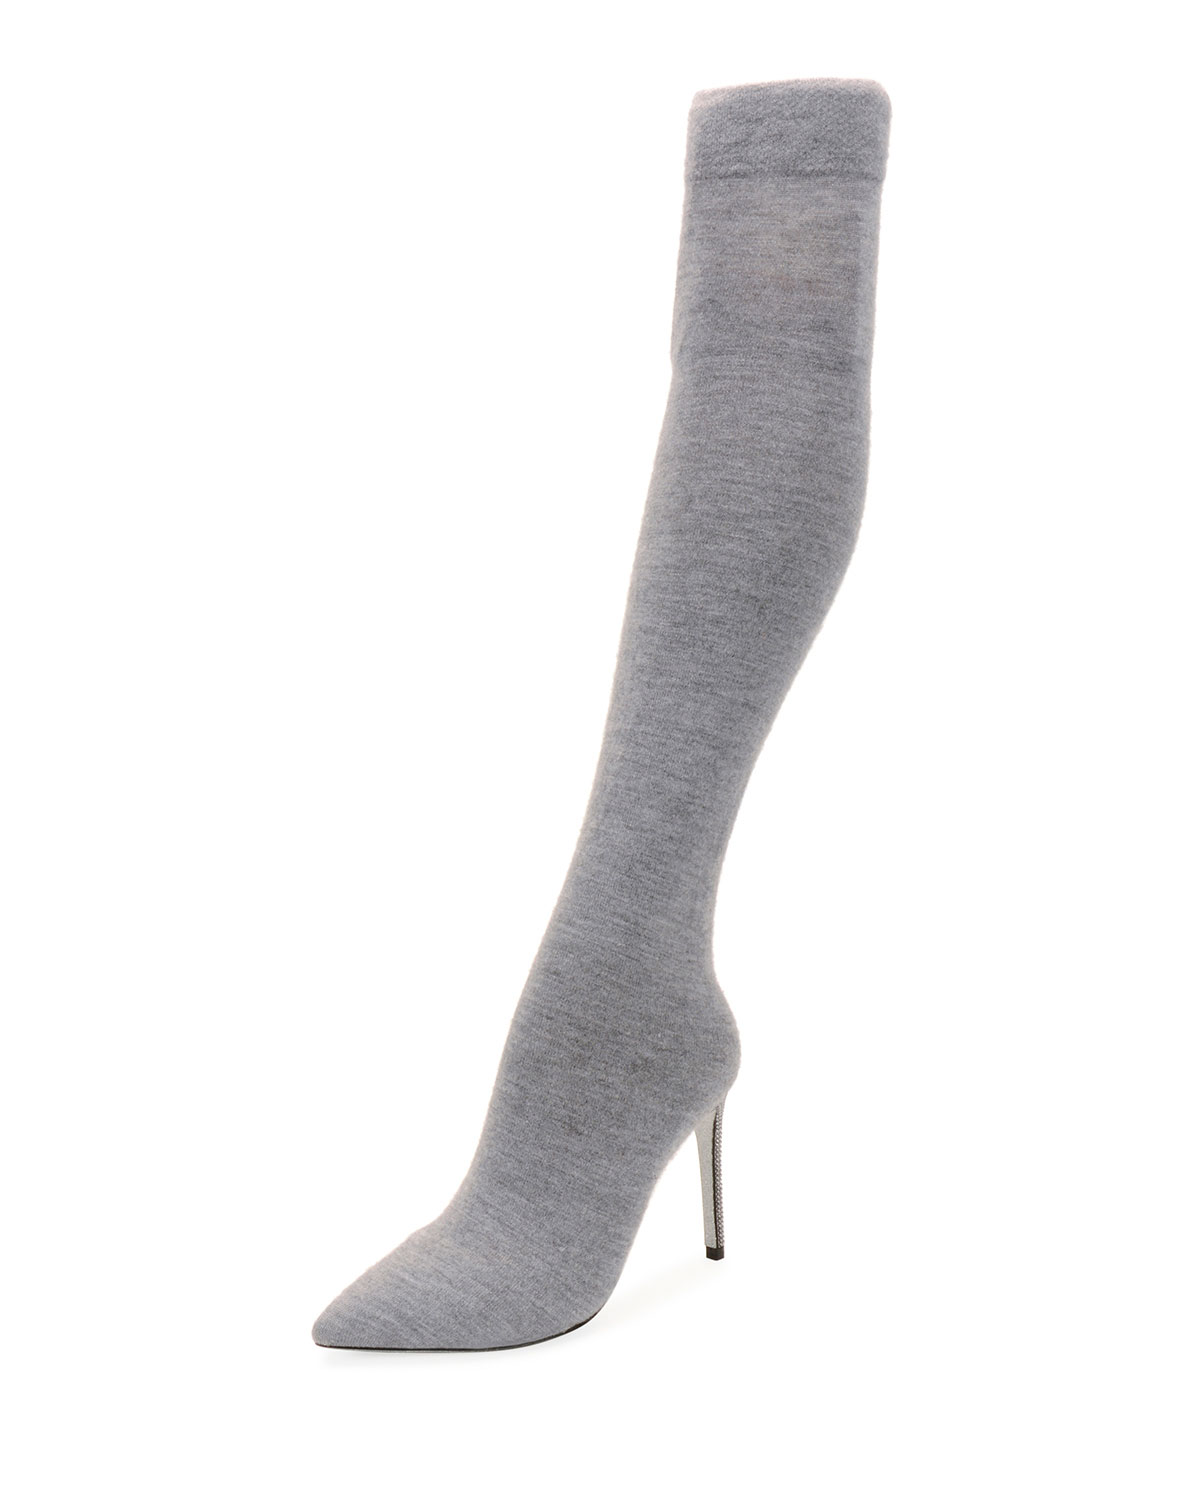 Rene Caovilla Jersey-Knit Over-The-Knee Boot Boot Boot cfd778